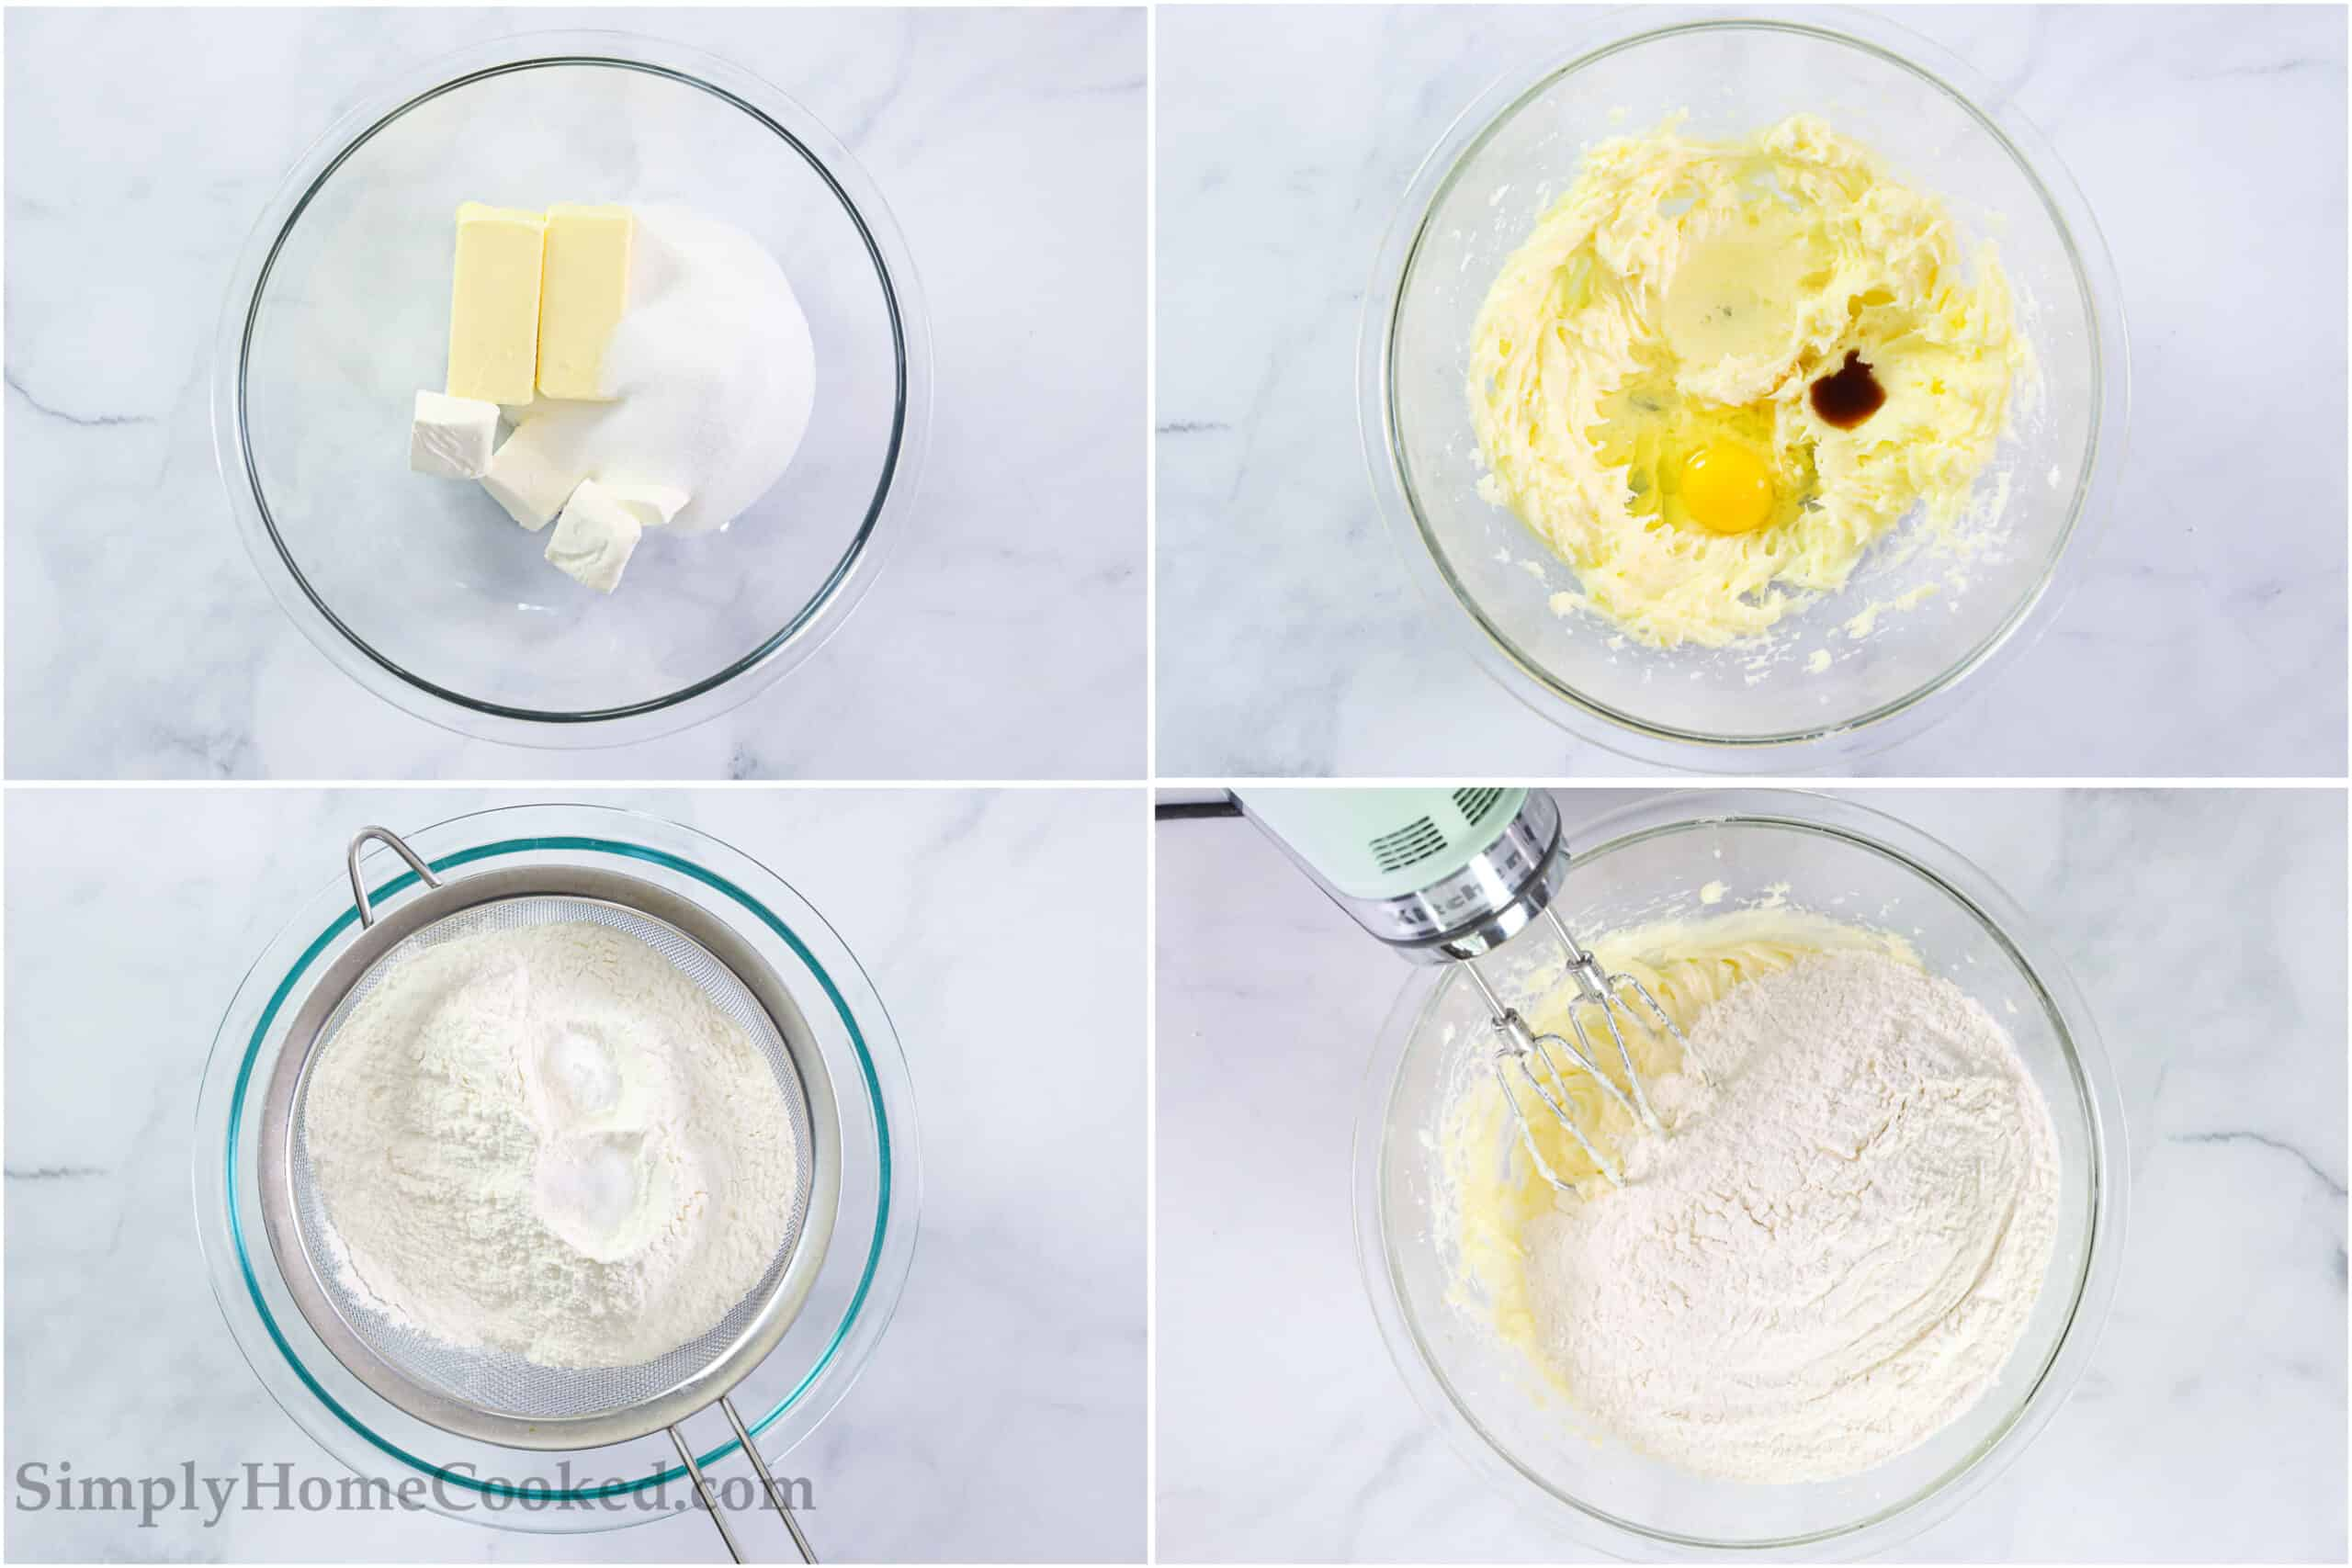 Steps to make Lofthouse Frosted Sugar Cookies, including beat together the wet ingredients and then sifting in and mixing the dry ingredients into the cookie dough.